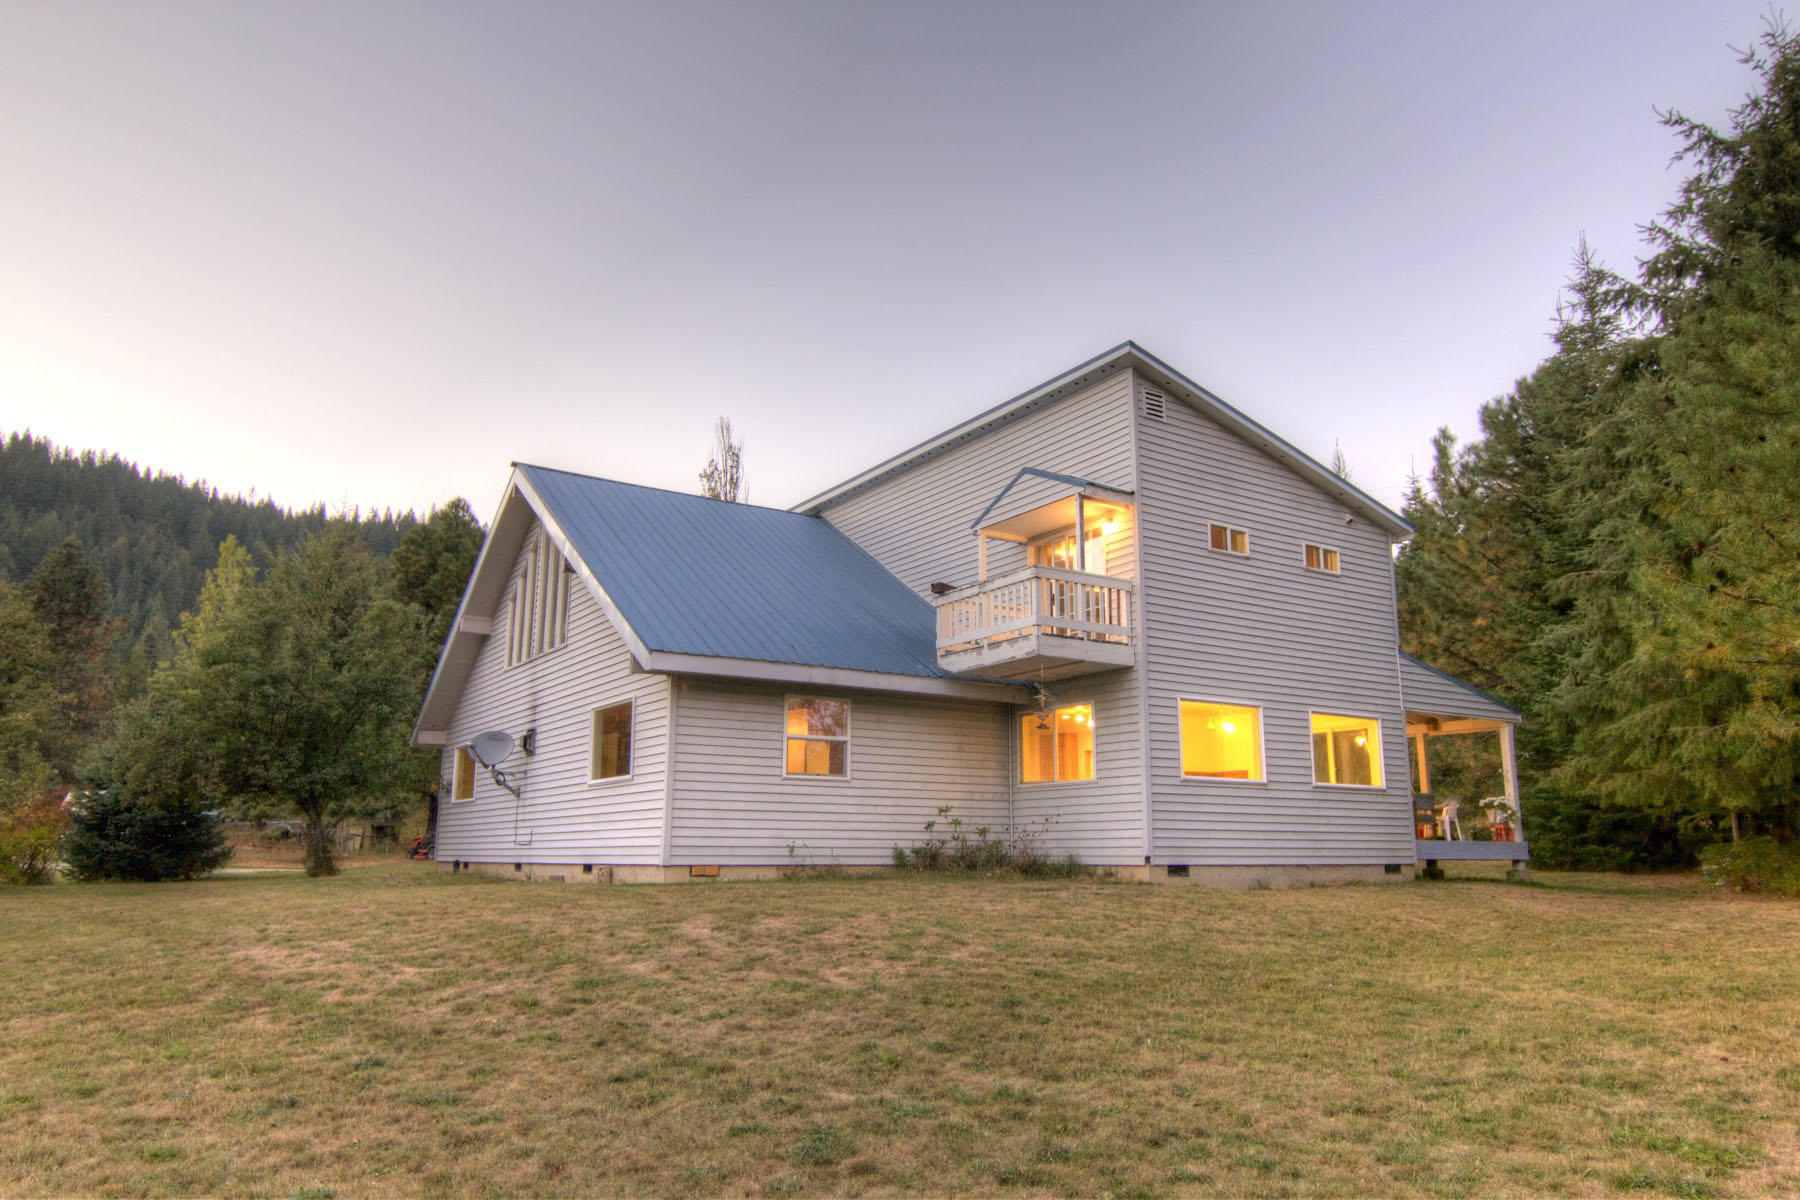 Single Family Home for Sale at Spacious Living on Nearly 4 Park-like Acres 24557 Highway 2 Dover, Idaho 83825 United States